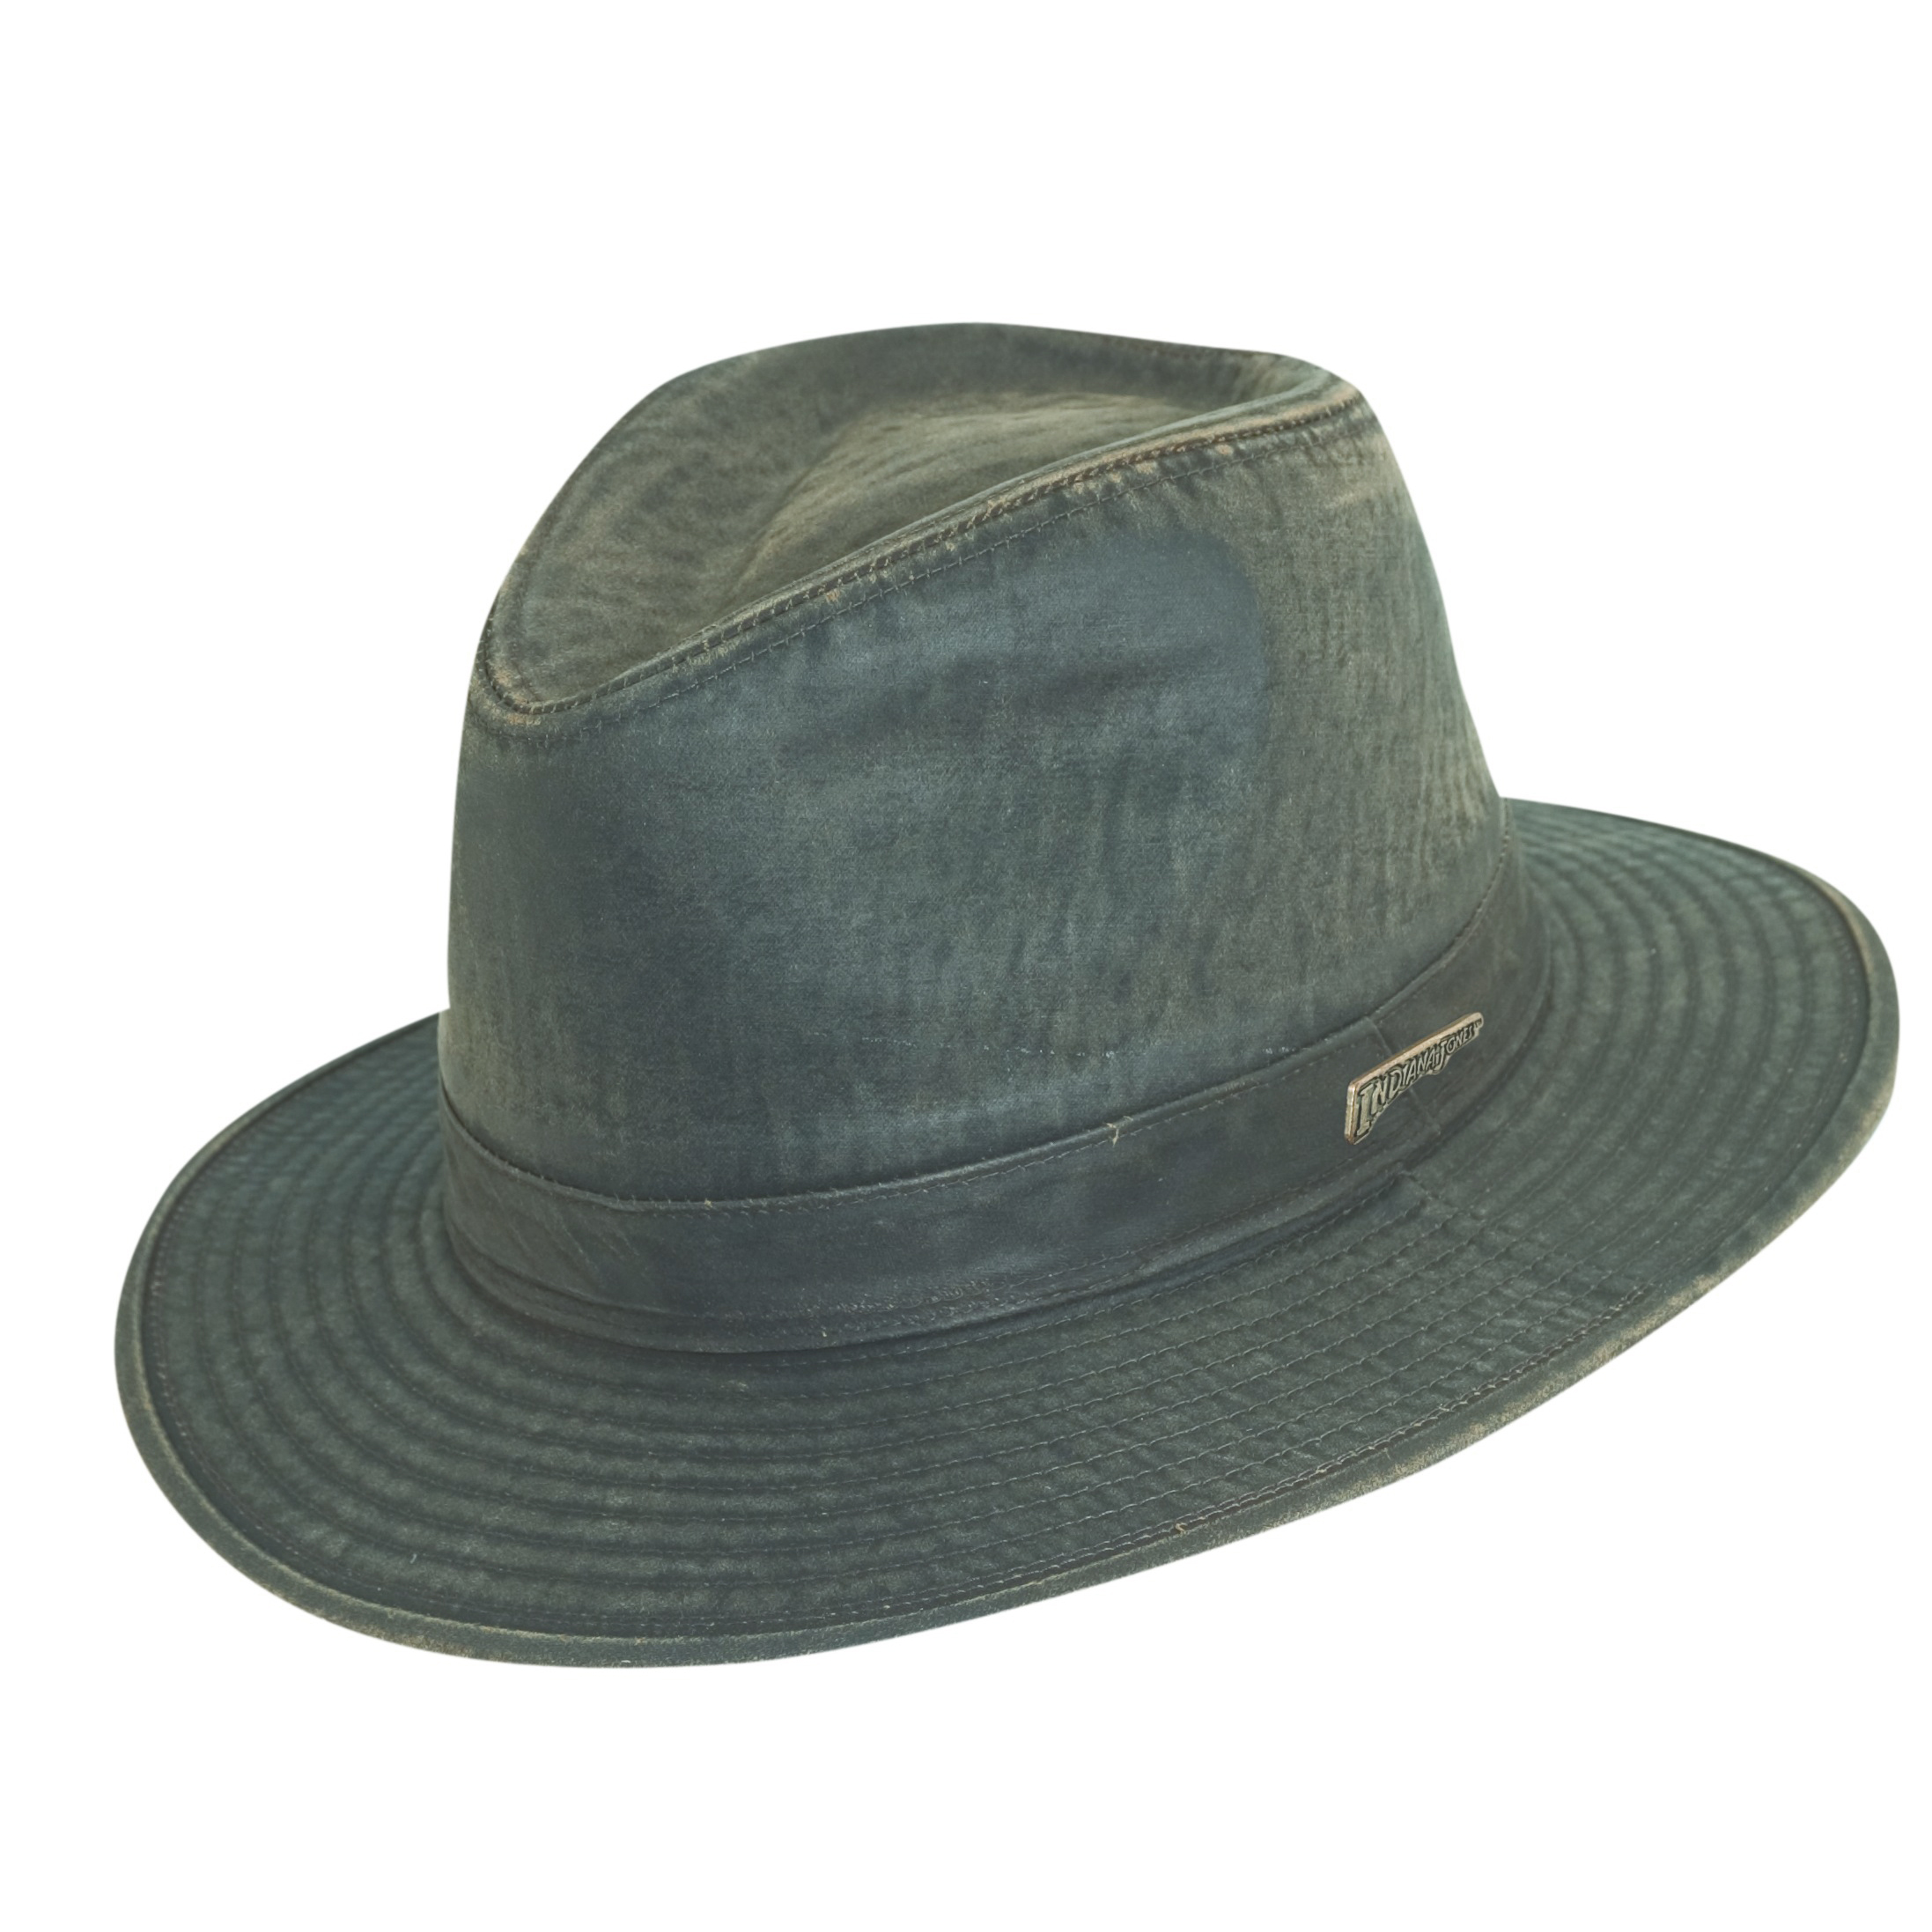 Indiana Jones Weathered Cotton Fedora Hat  7550b214e47